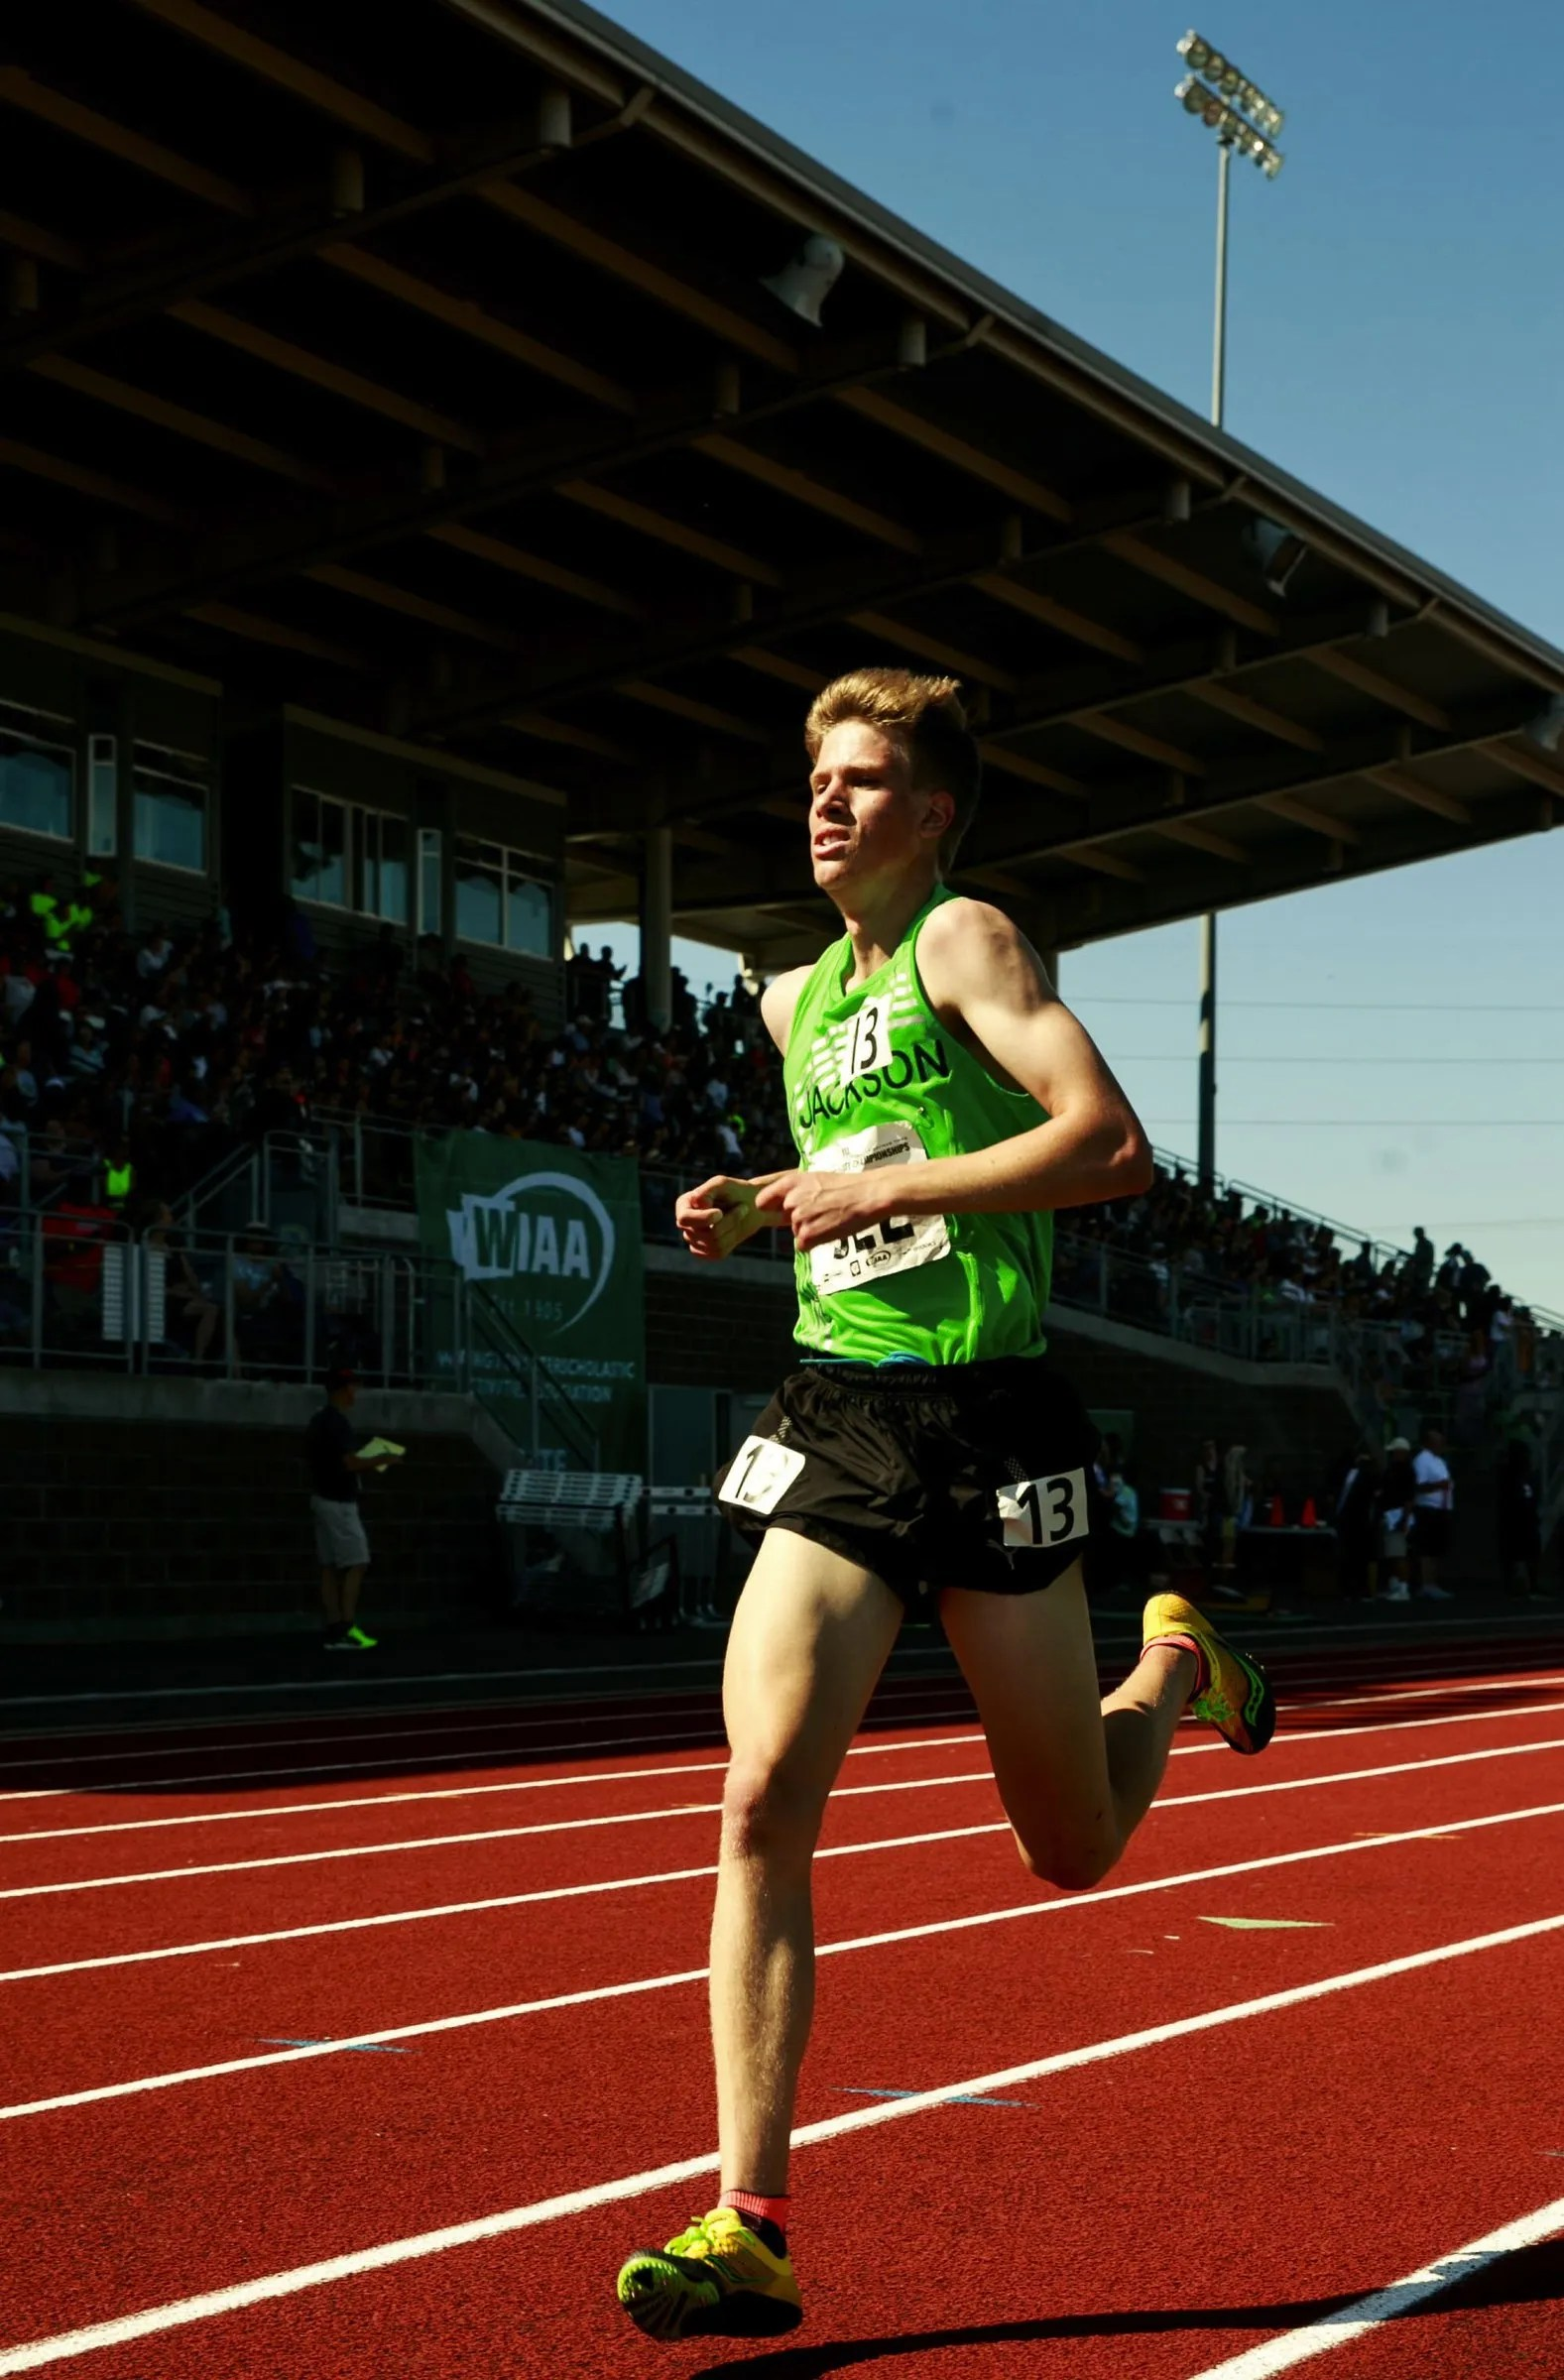 Photos from the 2017 Washington state track and field meet